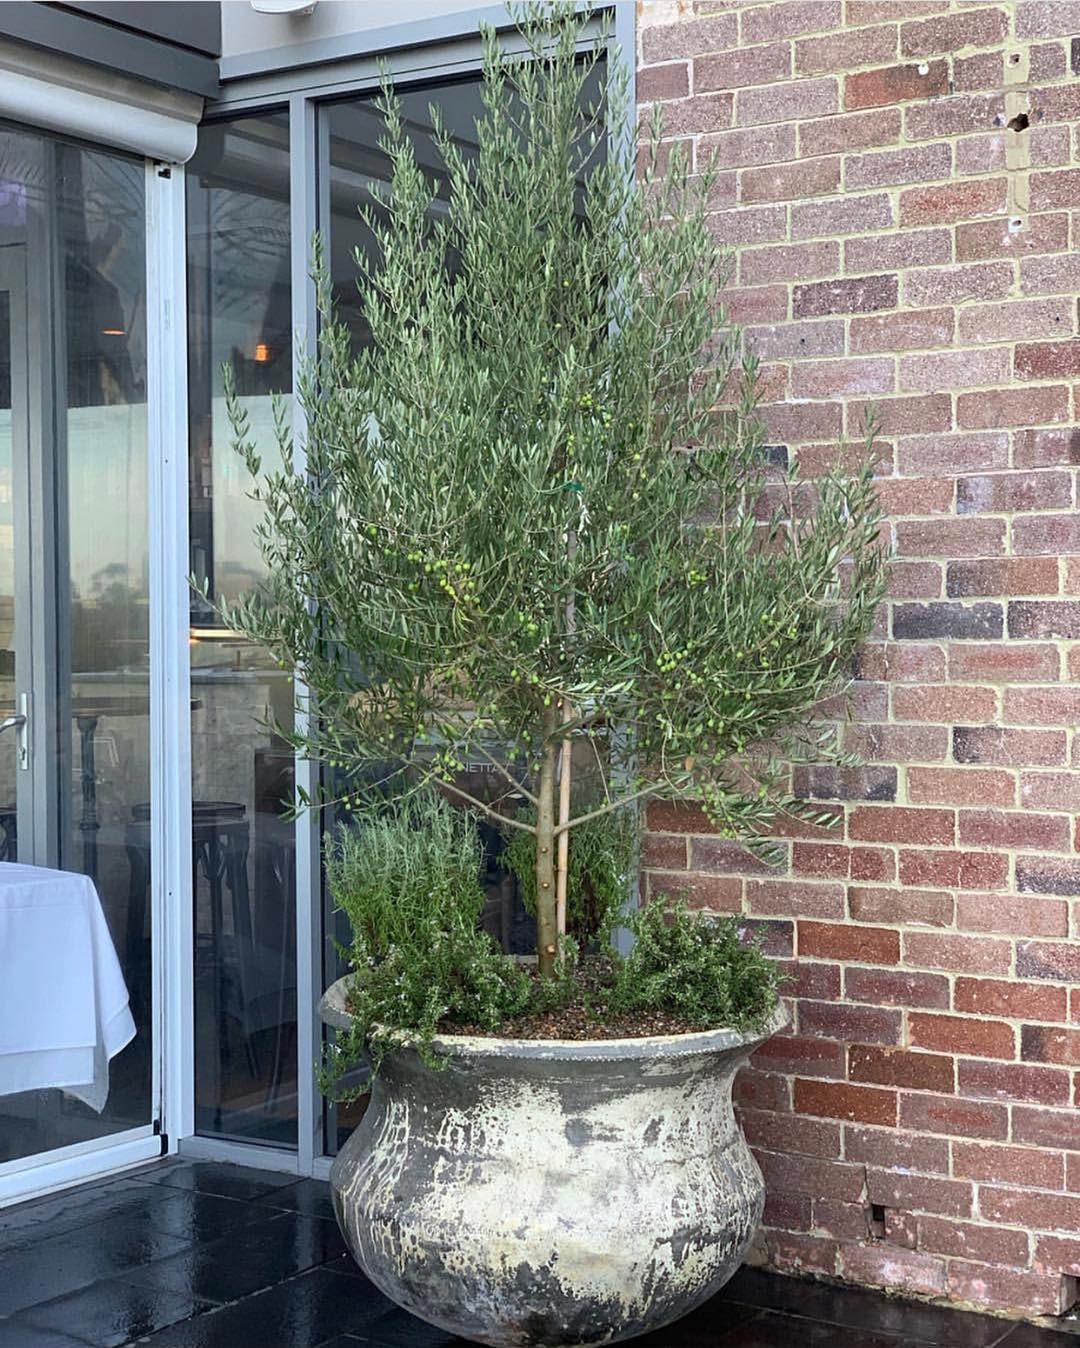 Olive Greens Pastel Succulents Bring Us The Mediteranian Feels In The Outdoor Eating Area At The Award Winning C Potted Olive Tree Potted Trees Garden Trees